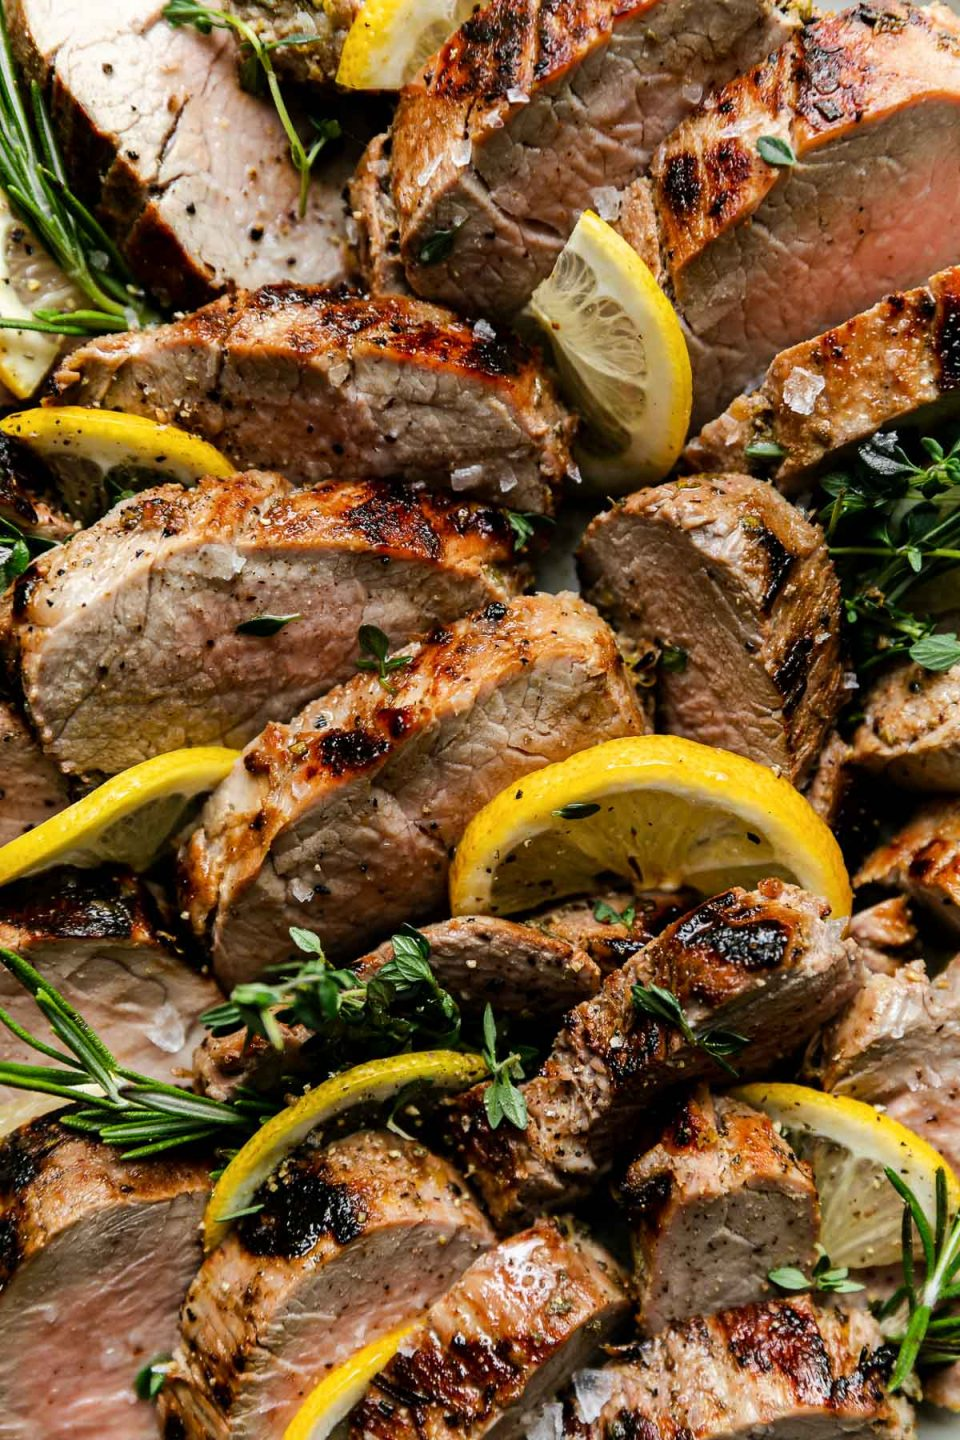 A close up of Lemon Garlic Grilled Pork Tenderloin. The tenderloin is sliced in medallions and garnished with sprigs of fresh rosemary, thyme, & lemon quarters for serving.